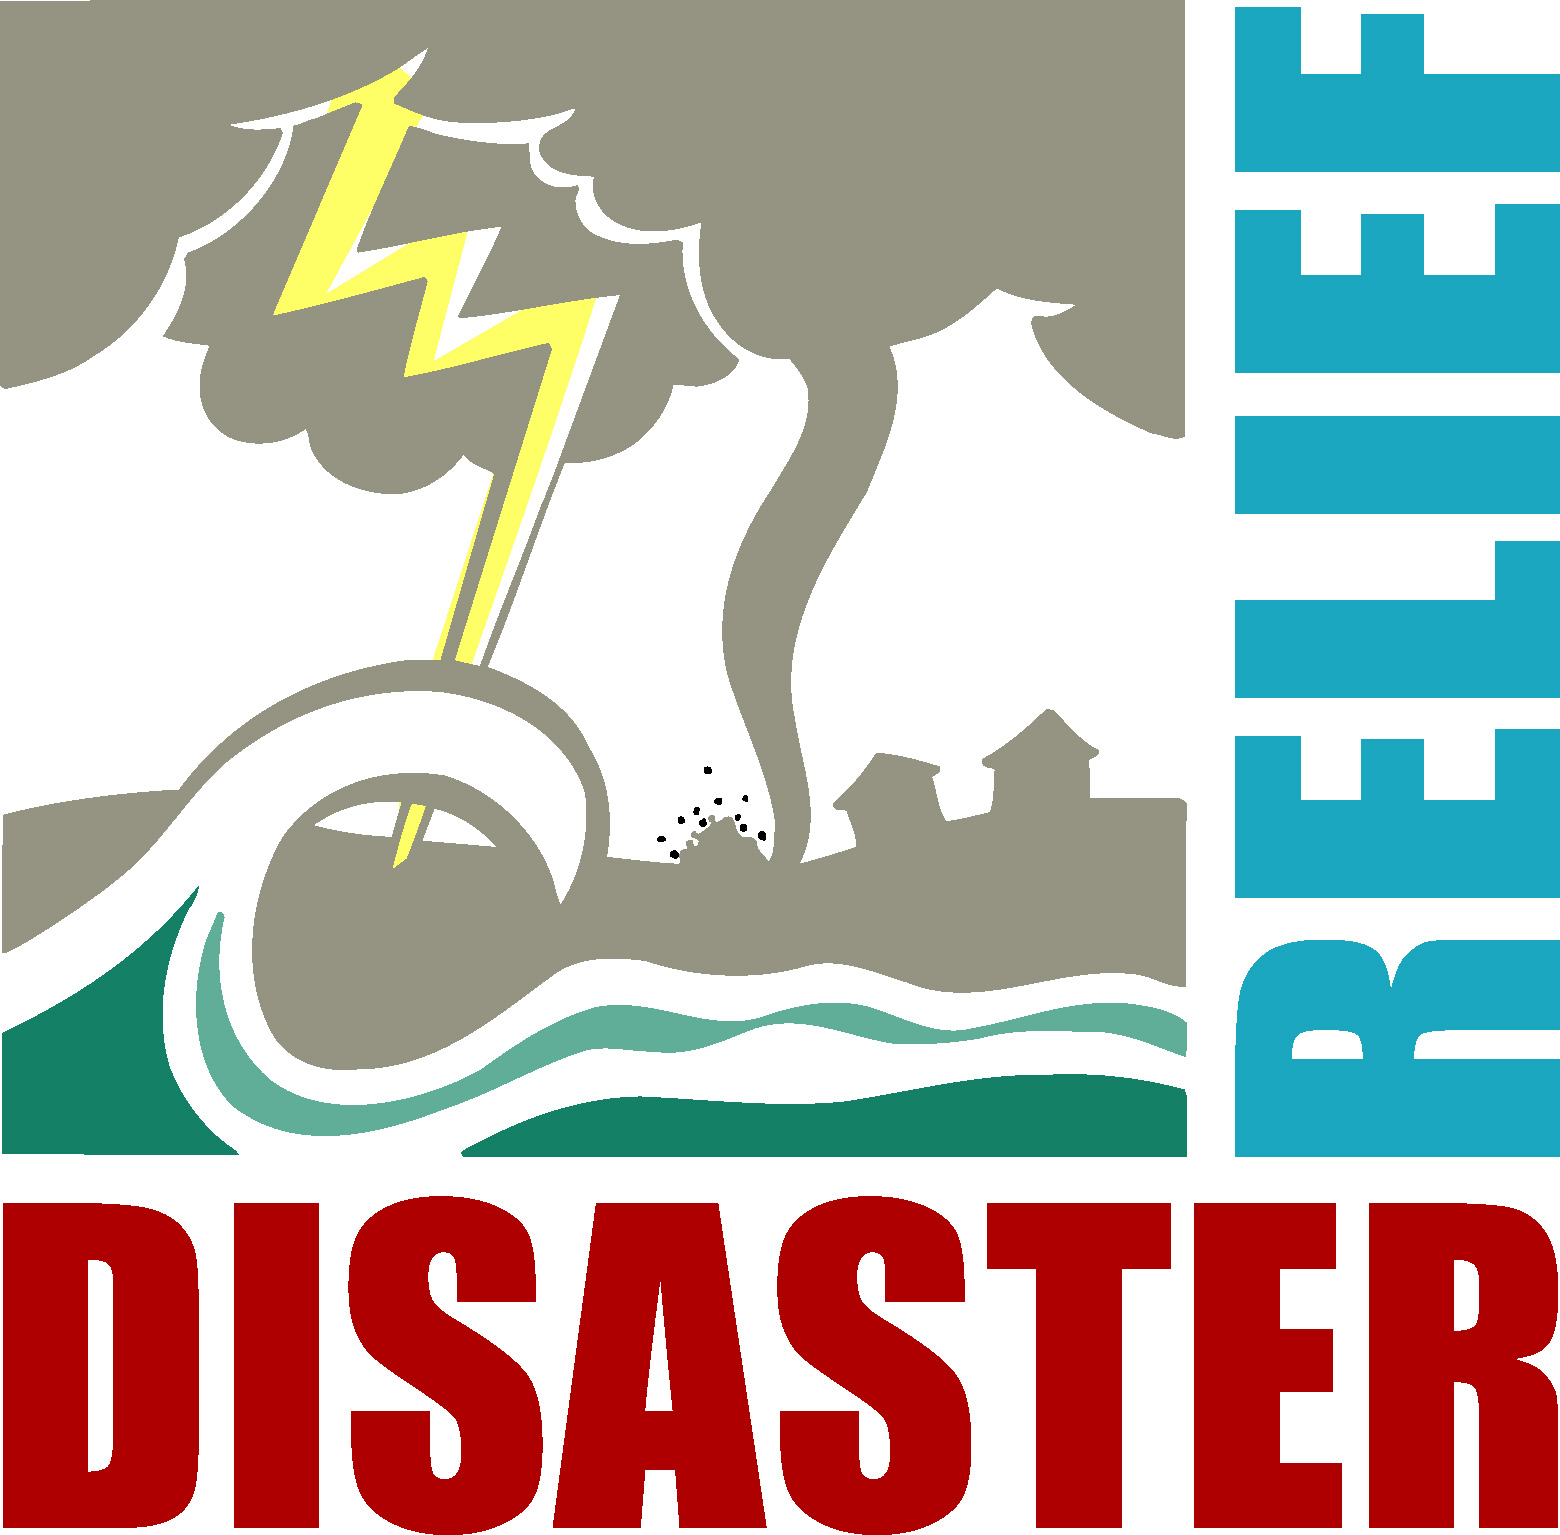 Disaster relief clipart.